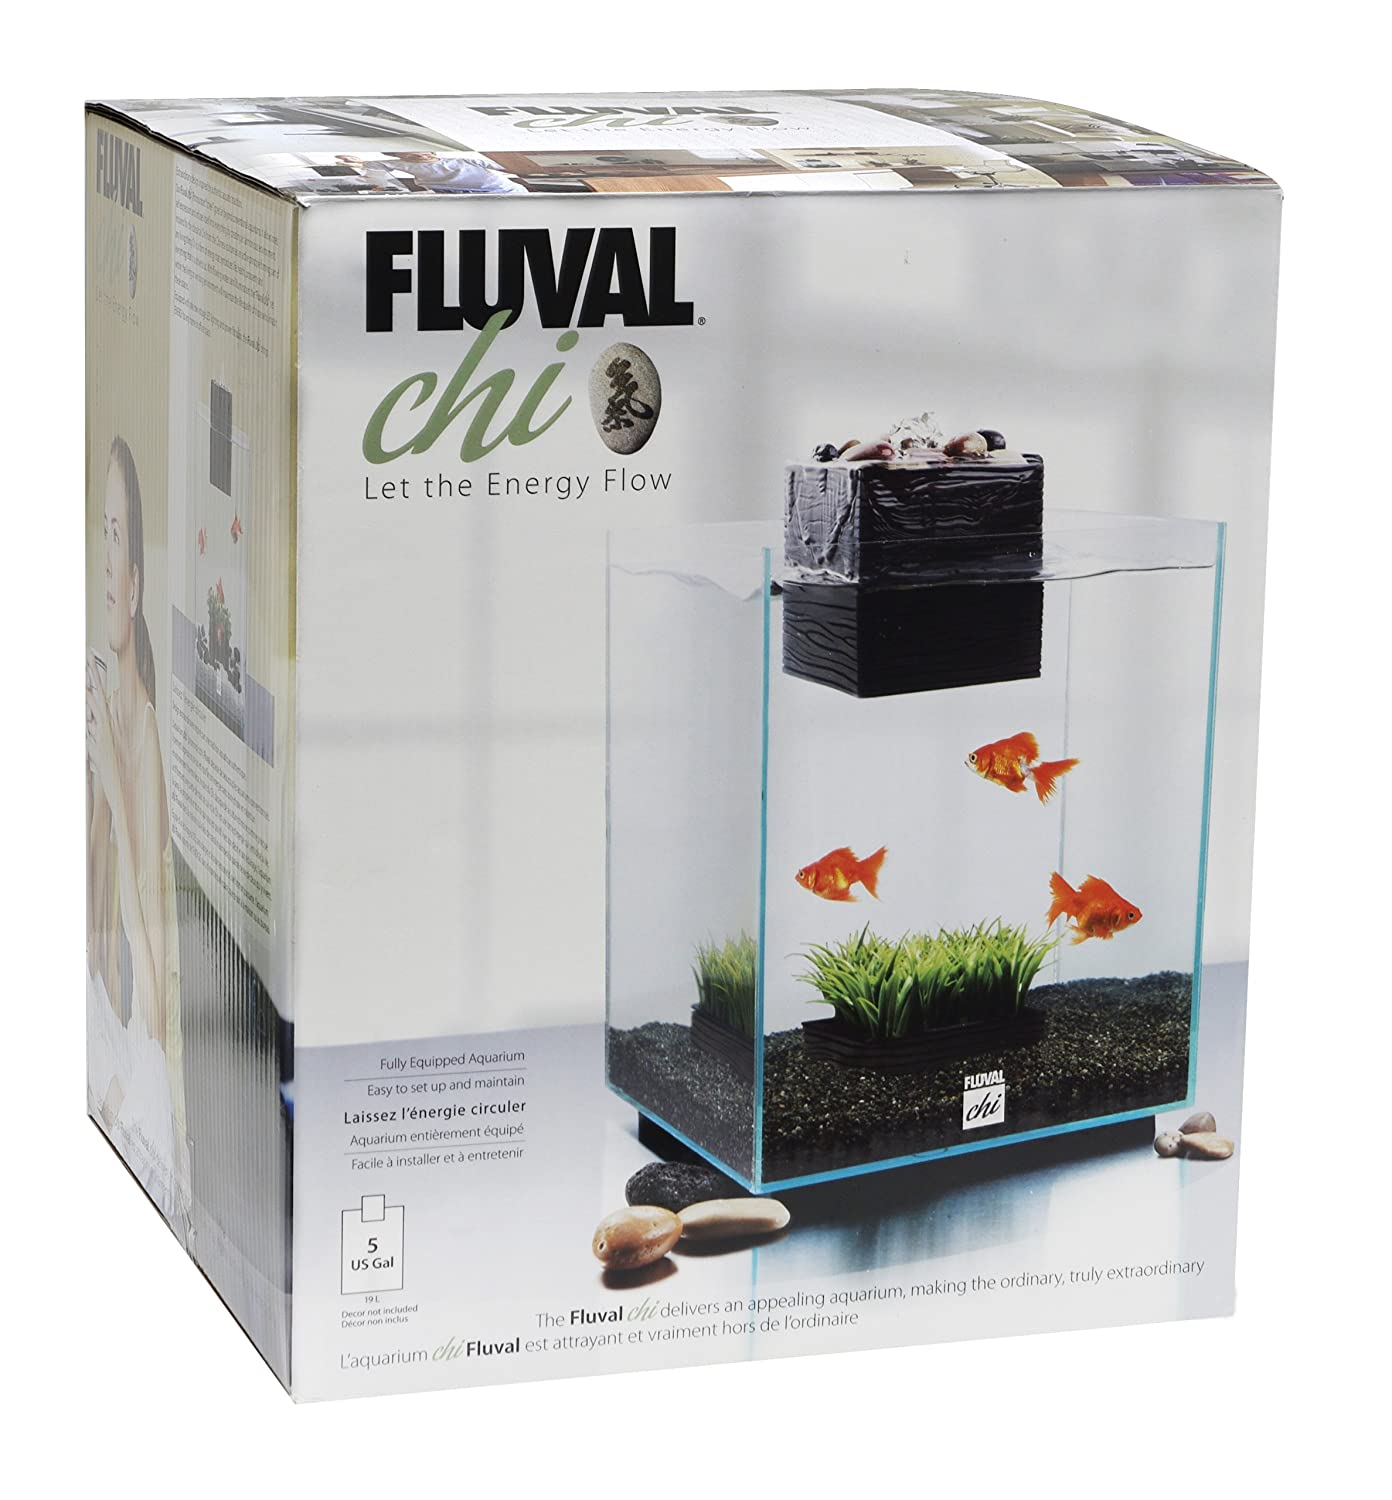 Fluval Chi Aquarium 19L: Amazon.co.uk: Pet Supplies